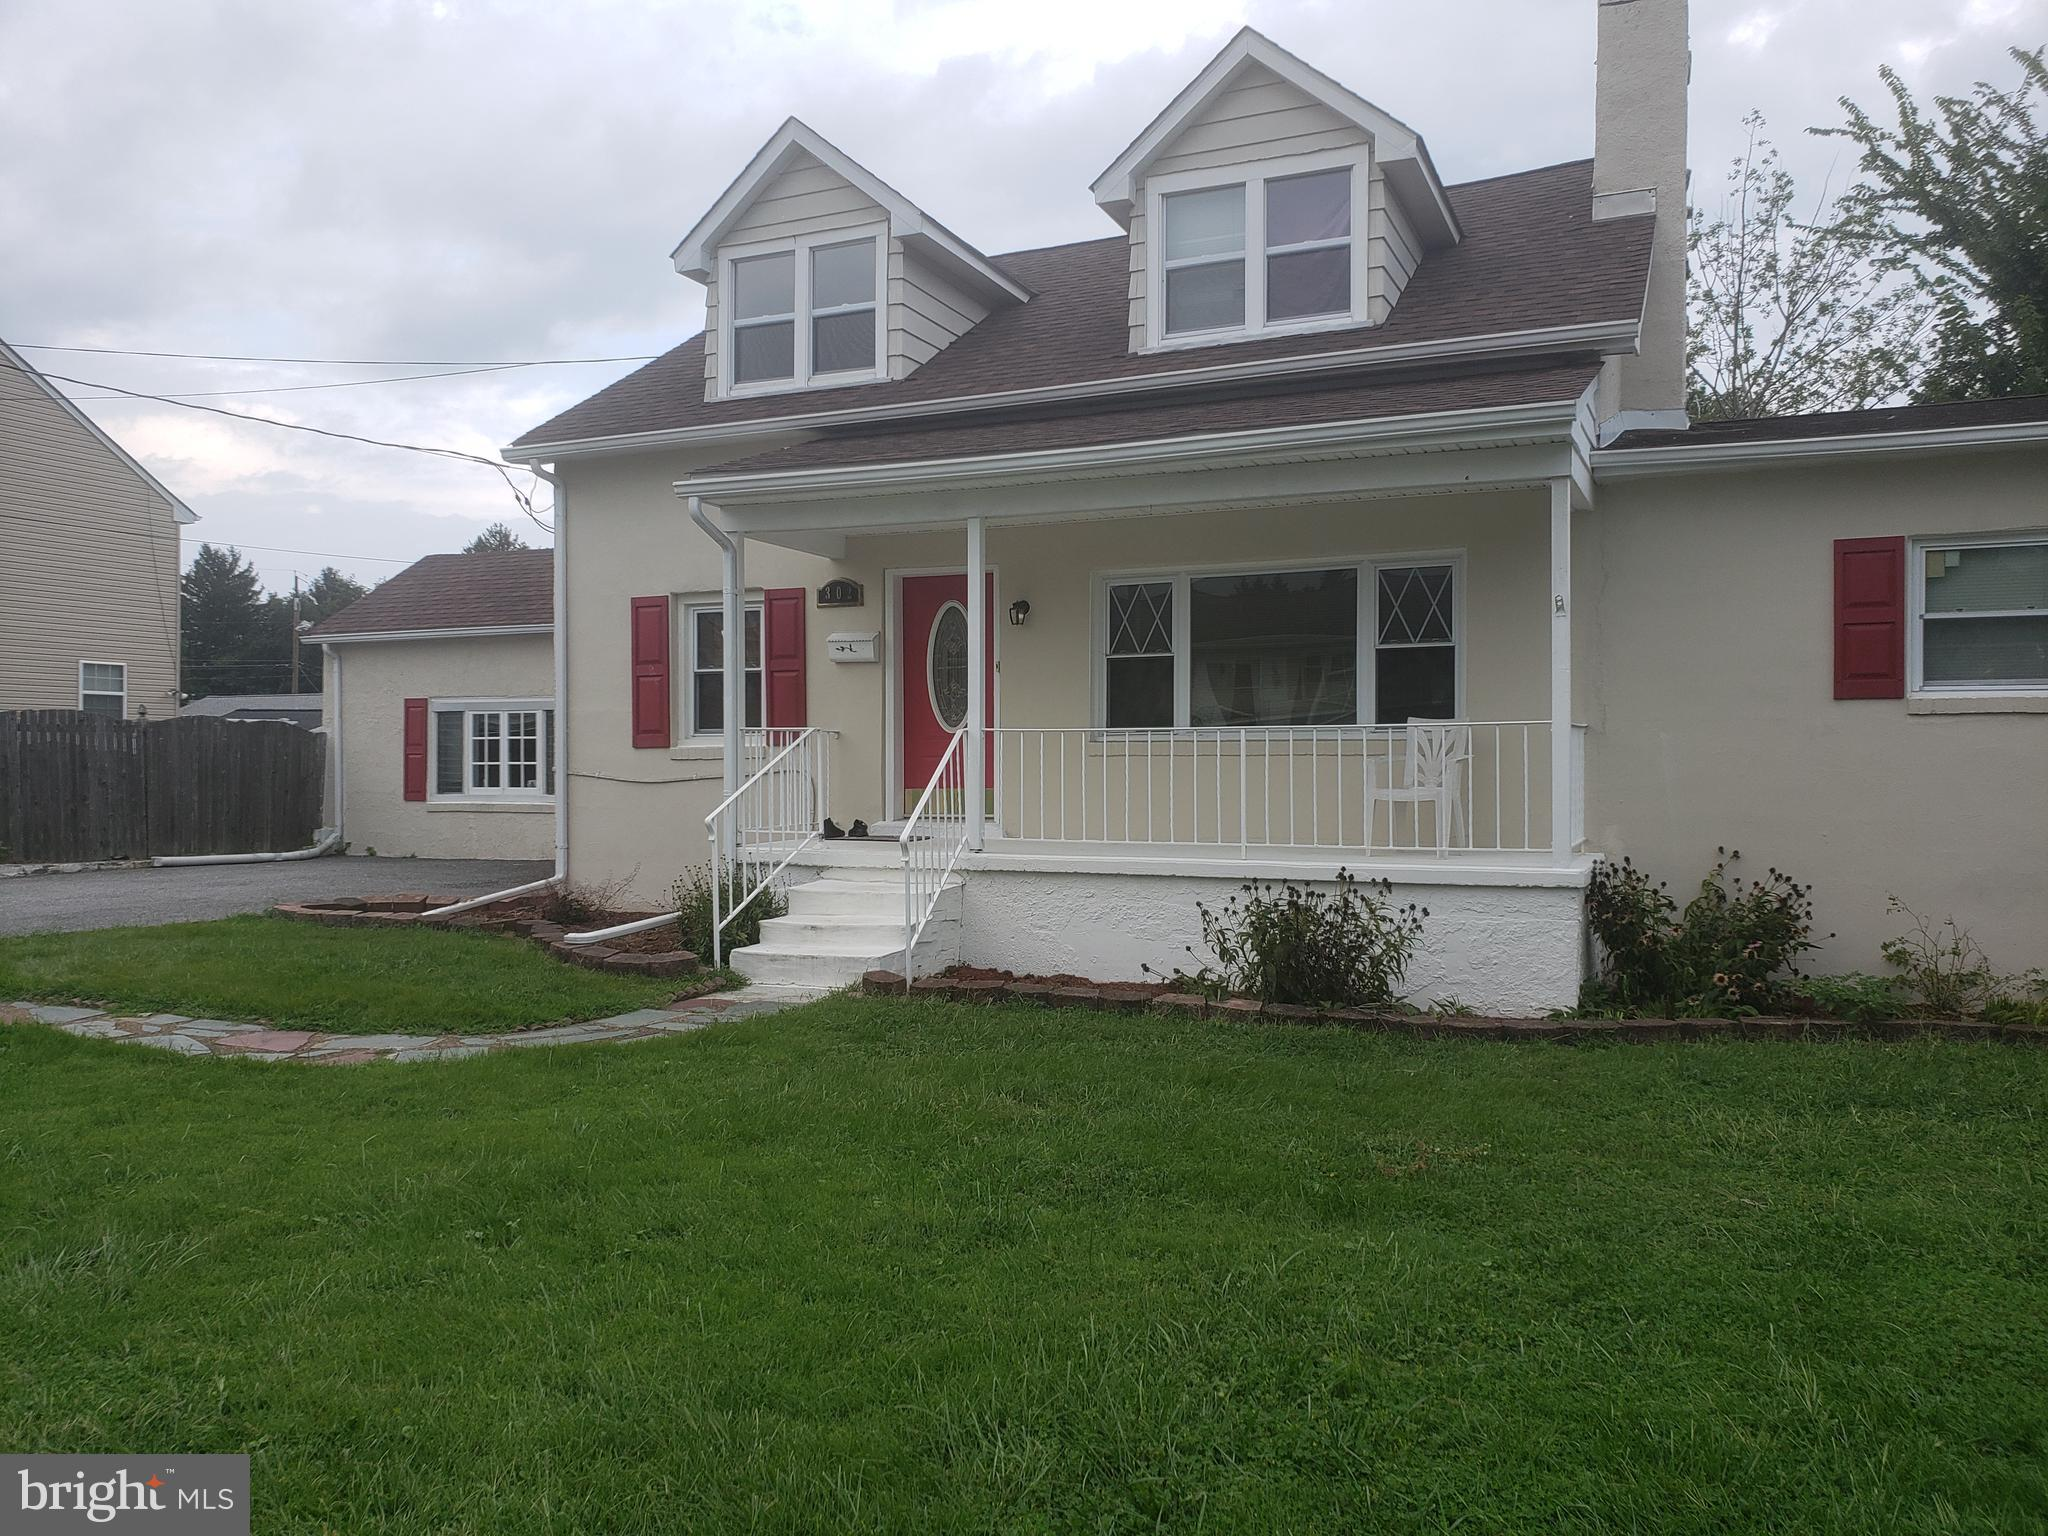 3 bedrooms, 2 full baths, 1st bedroom on main floor, wood burning fireplace, spacious backyard with